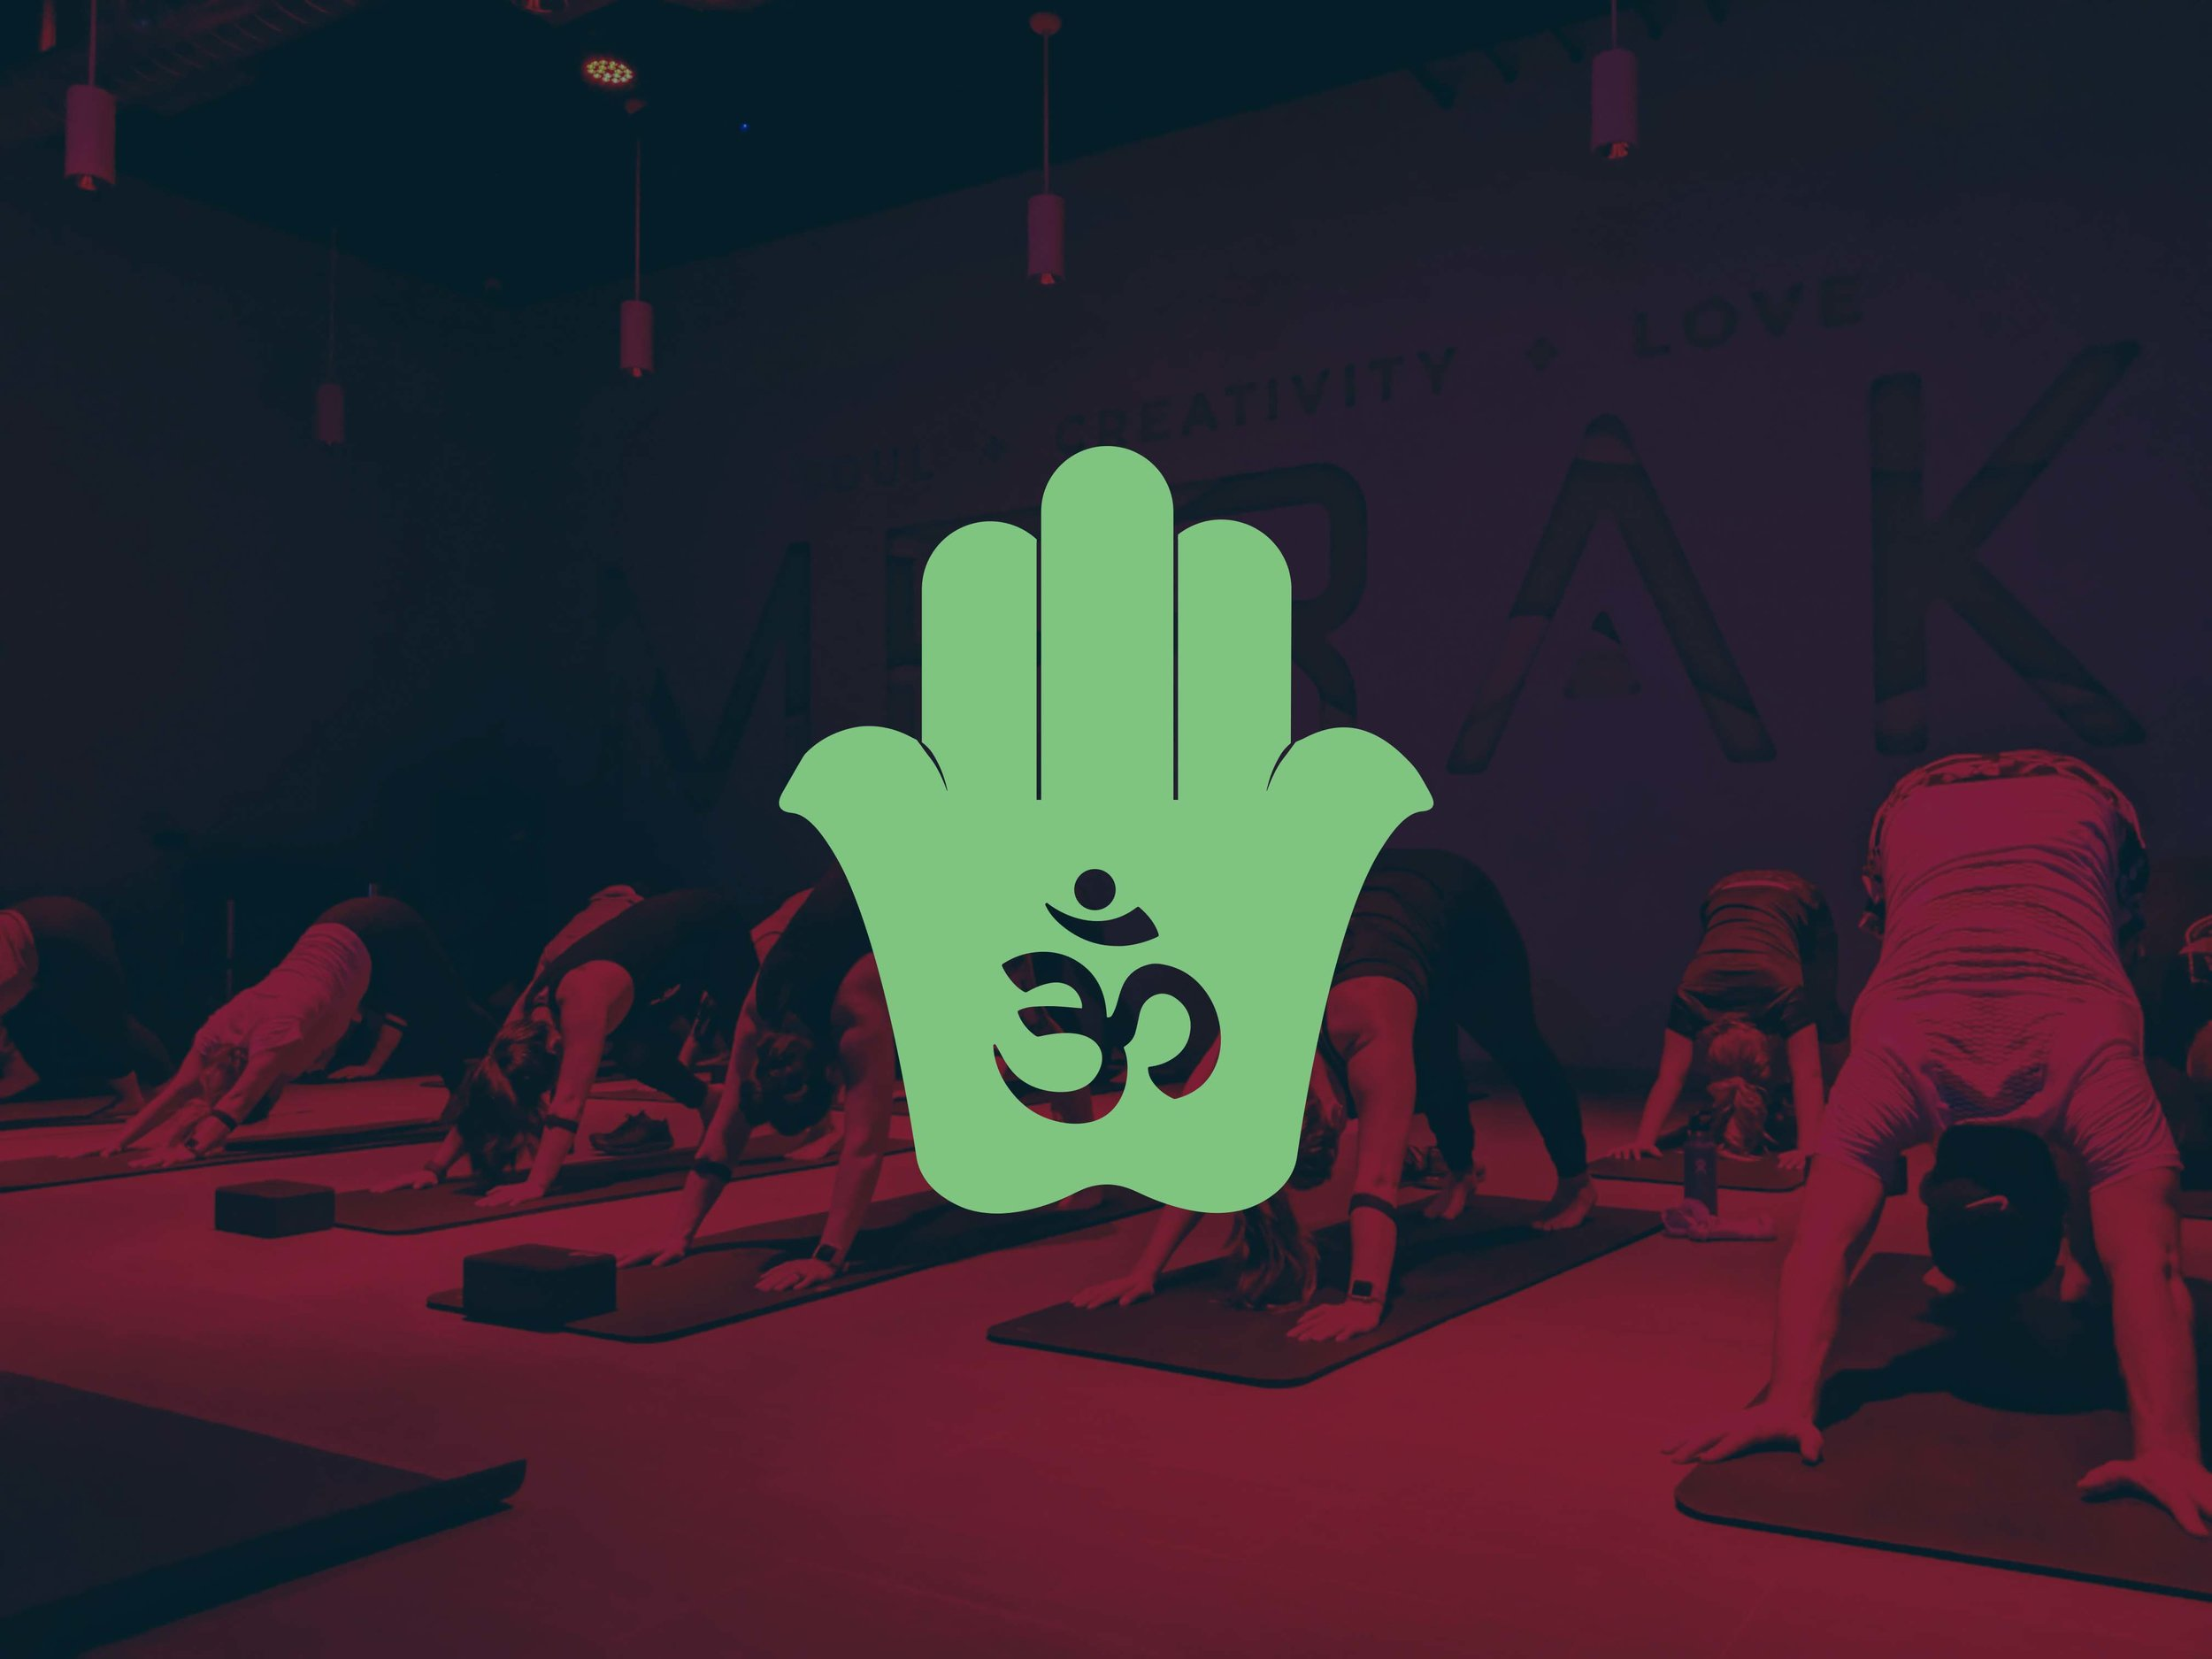 YOGA - RESTORATIVE ROUTINES THAT UTILIZES CORE STRENGTH, STABILITY AND FLEXIBILITY.our certified instructors bring a multitude of practices that rejuvenate your mind, body and soul.